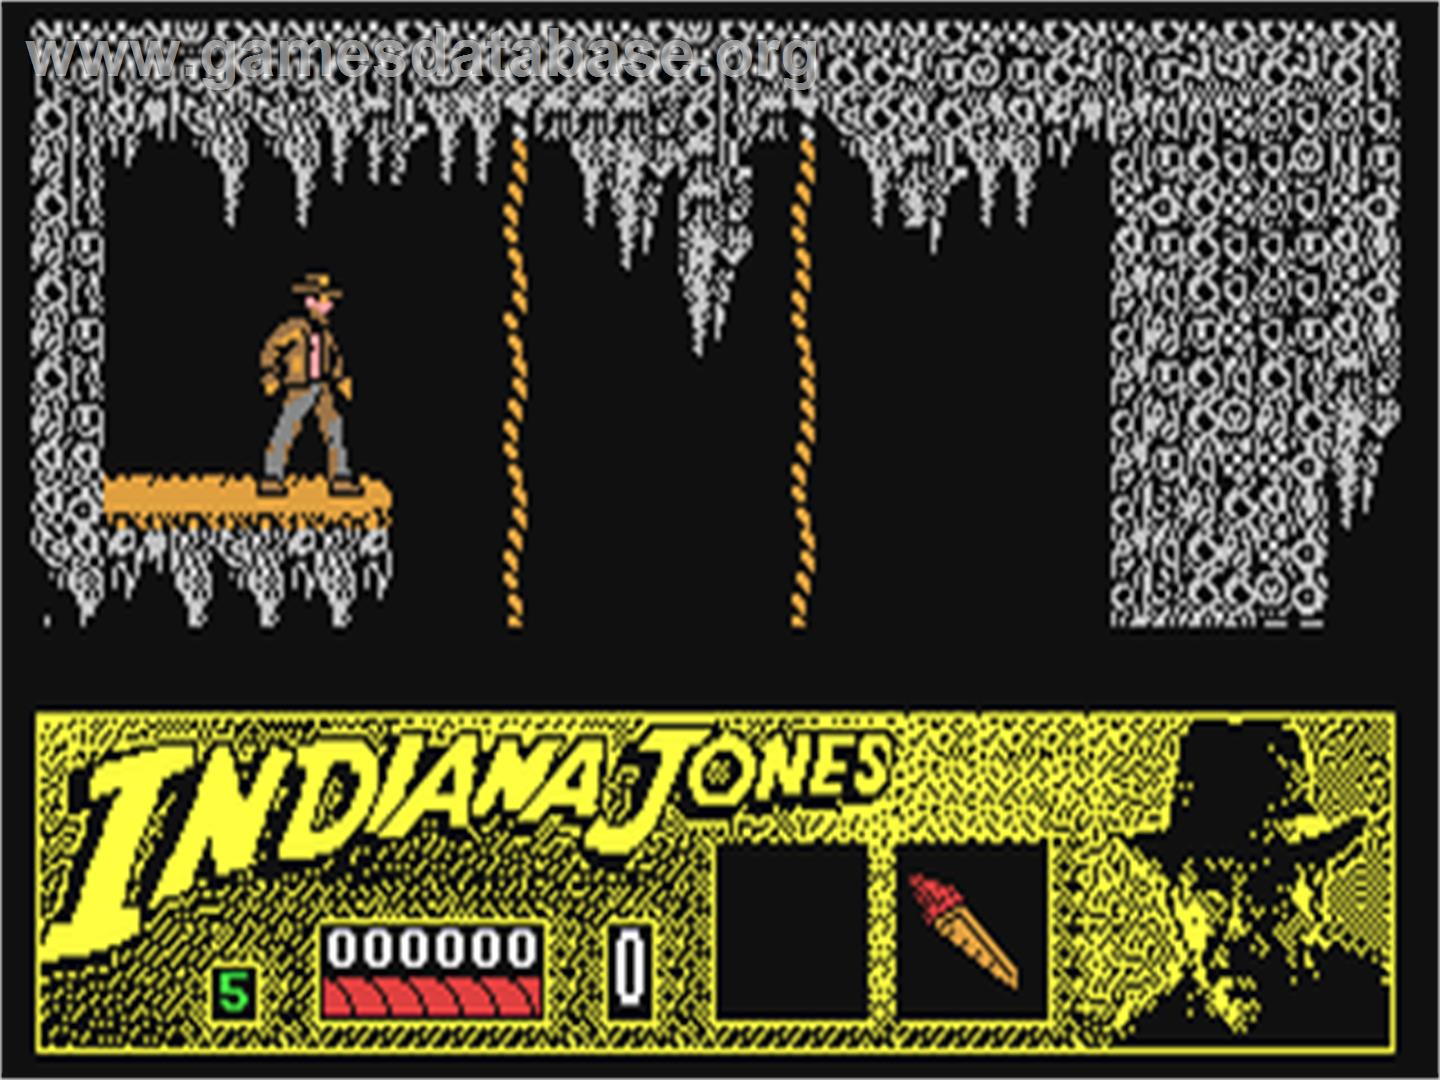 Indiana_Jones_and_the_Last_Crusade-_The_Action_Game_-_1989_-_U.S._Gold